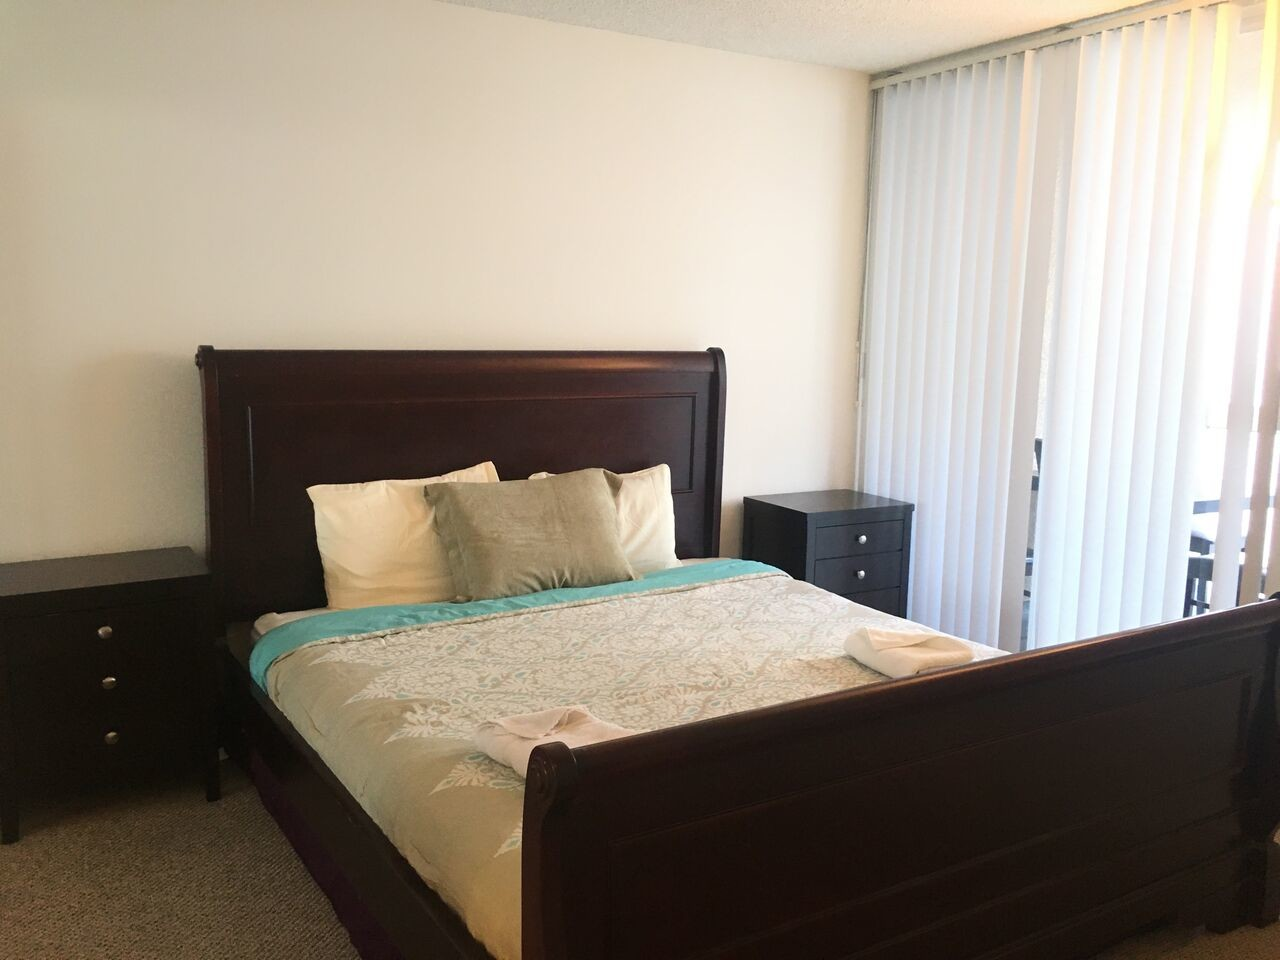 Private Room for Rent in 2bd 2bath Apt at Westwood Village Galleria